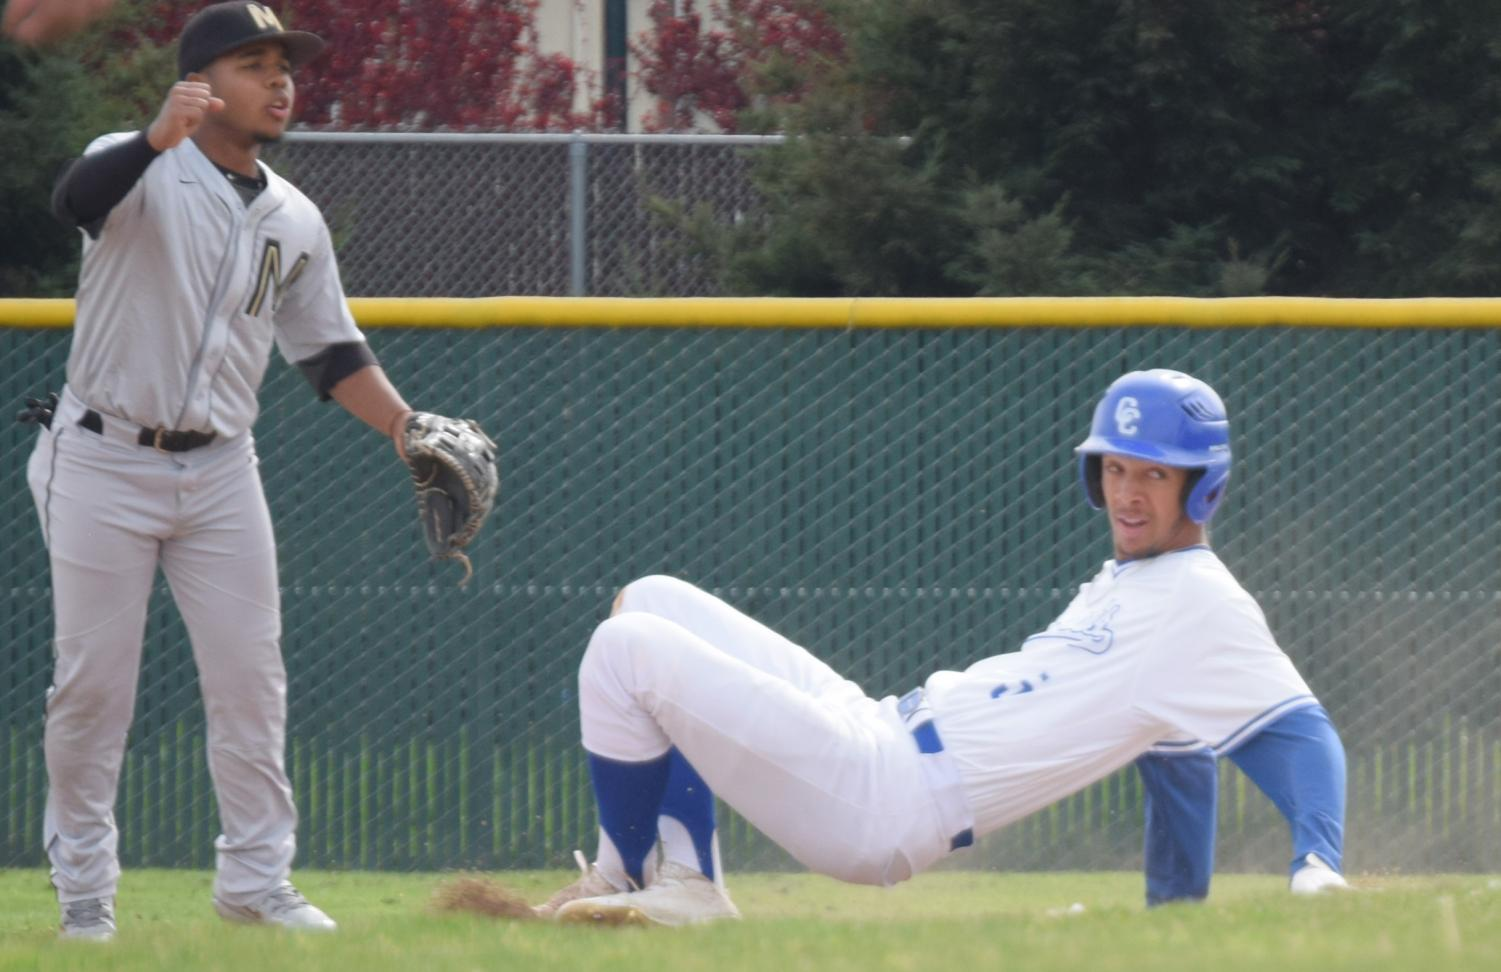 Comet outfielder Mychael Jamison slides in safely after stealing second base during Contra Costa College's 12-3 defeat to the College of Marin on Monday at the Baseball Field.